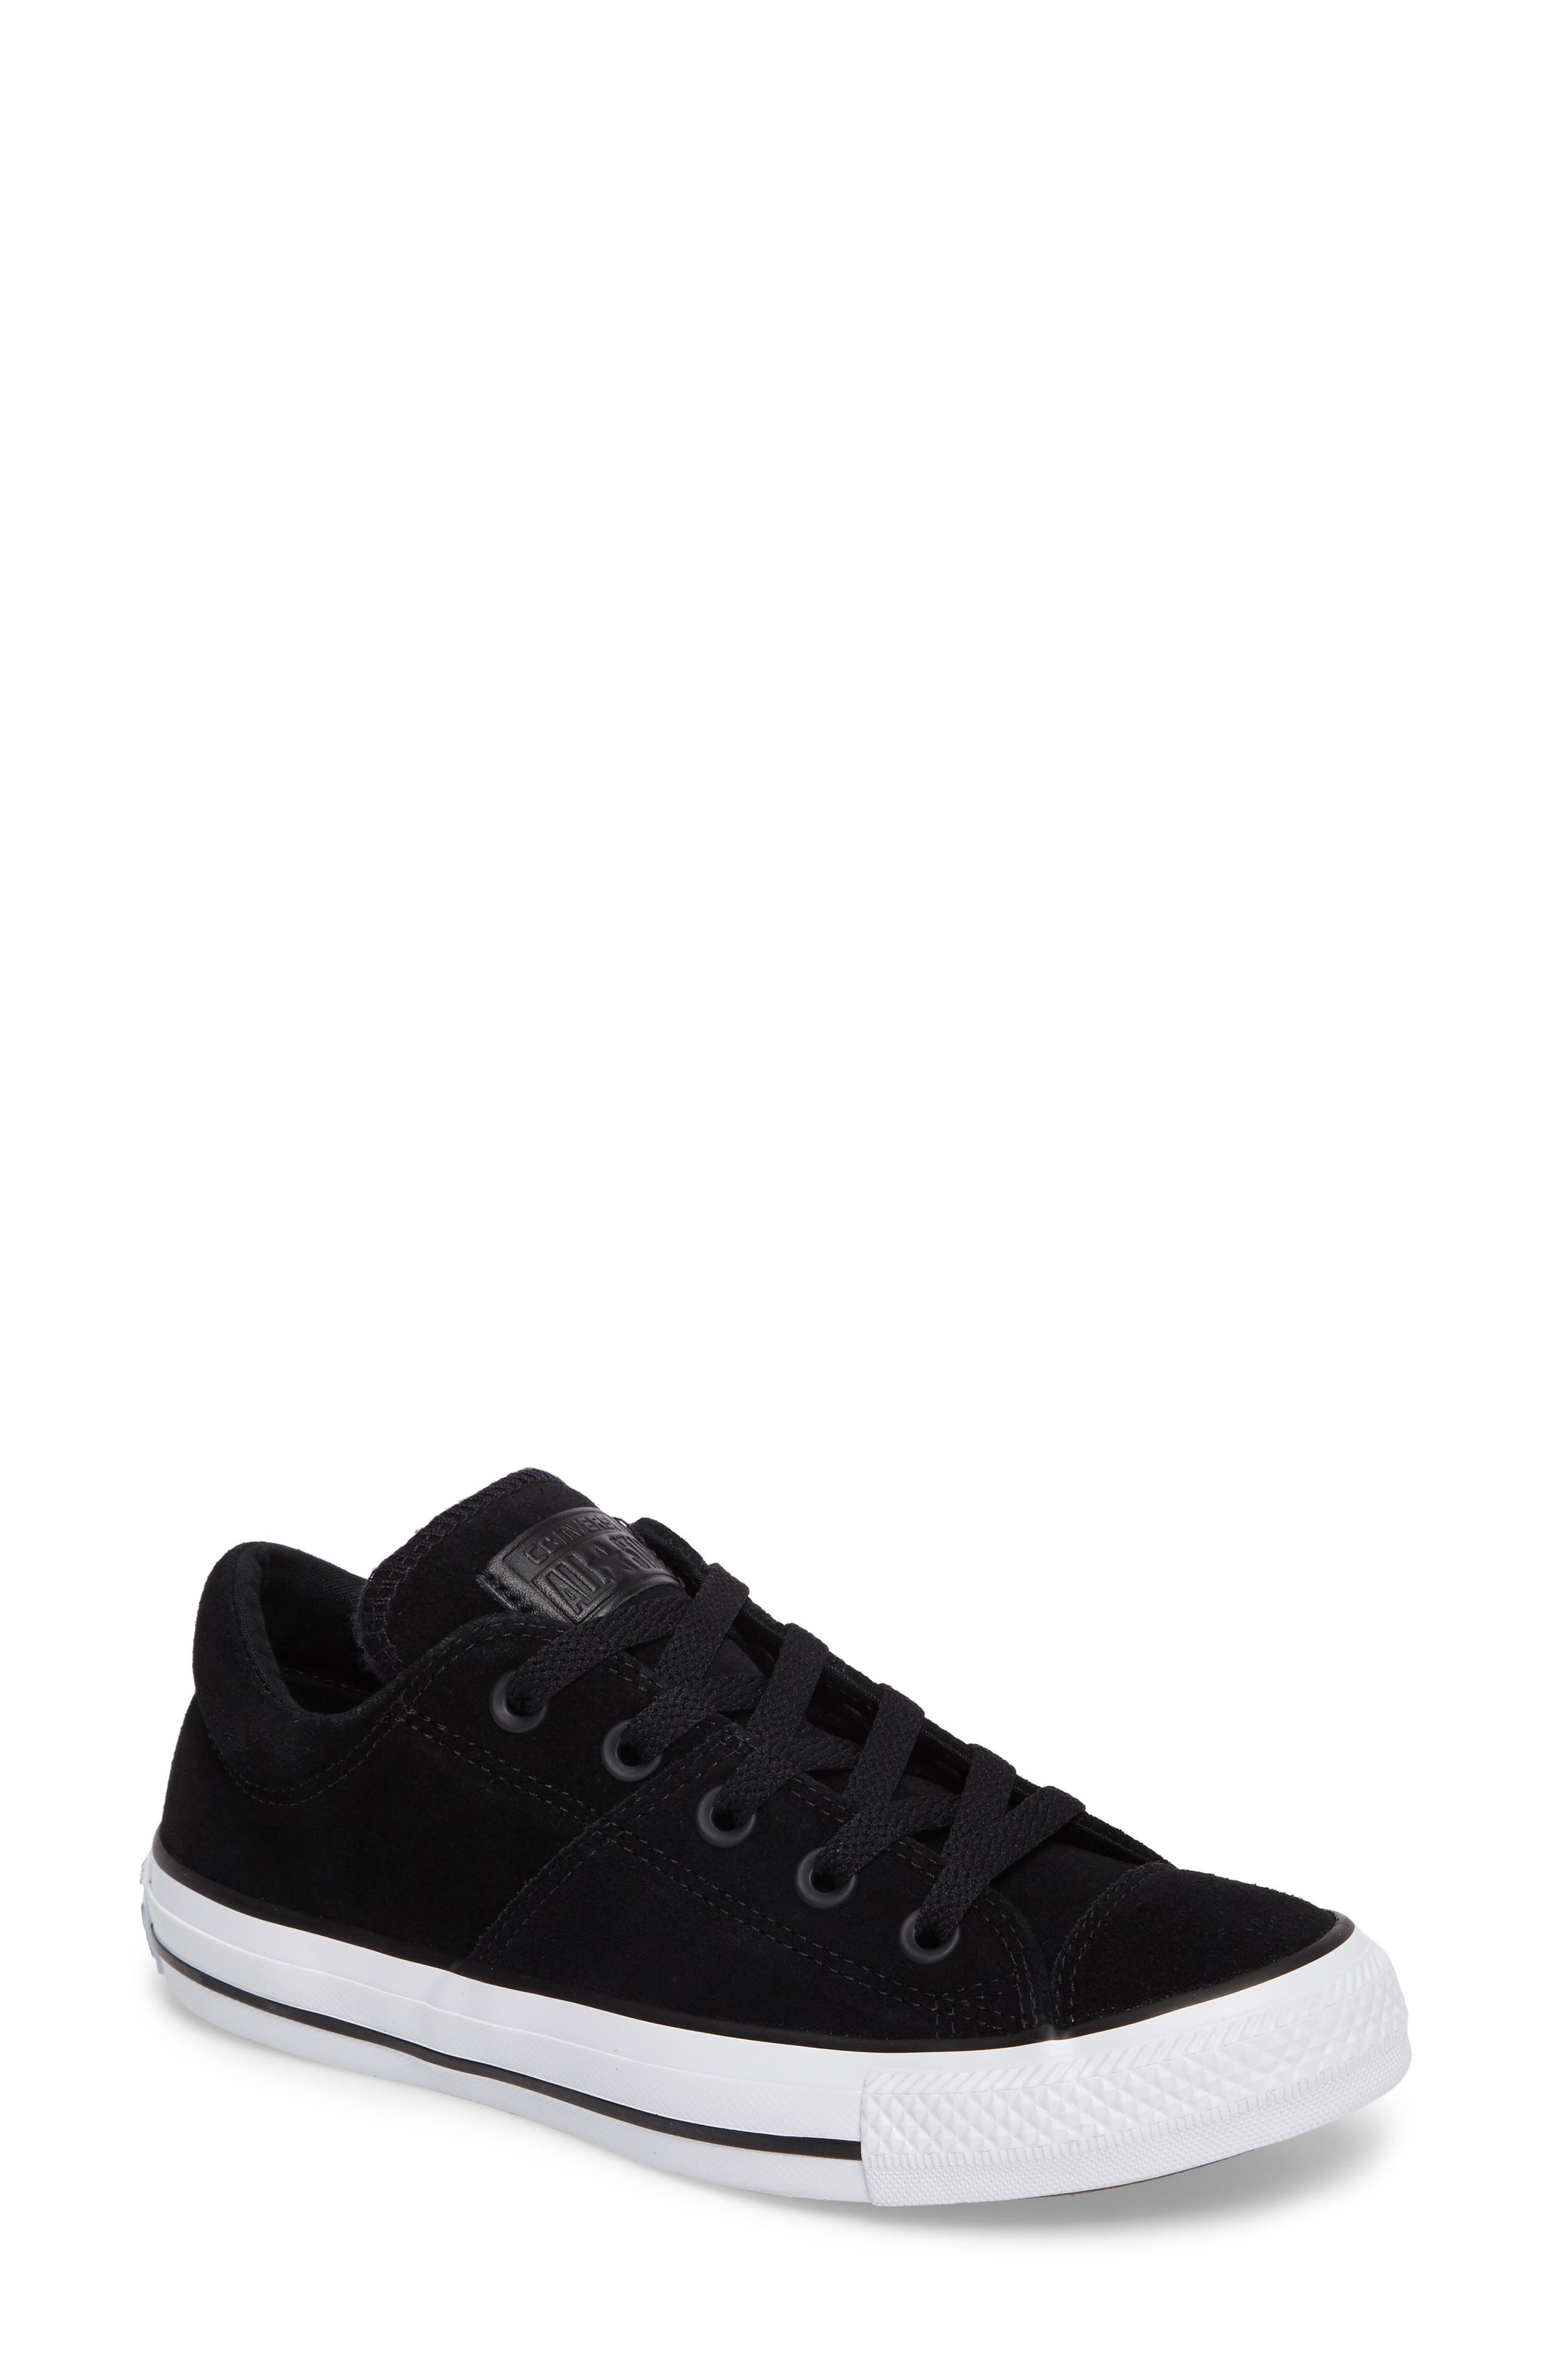 Alternate Image 1 Selected - Converse Chuck Taylor® All Star® Madison Low Top Sneaker (Women)